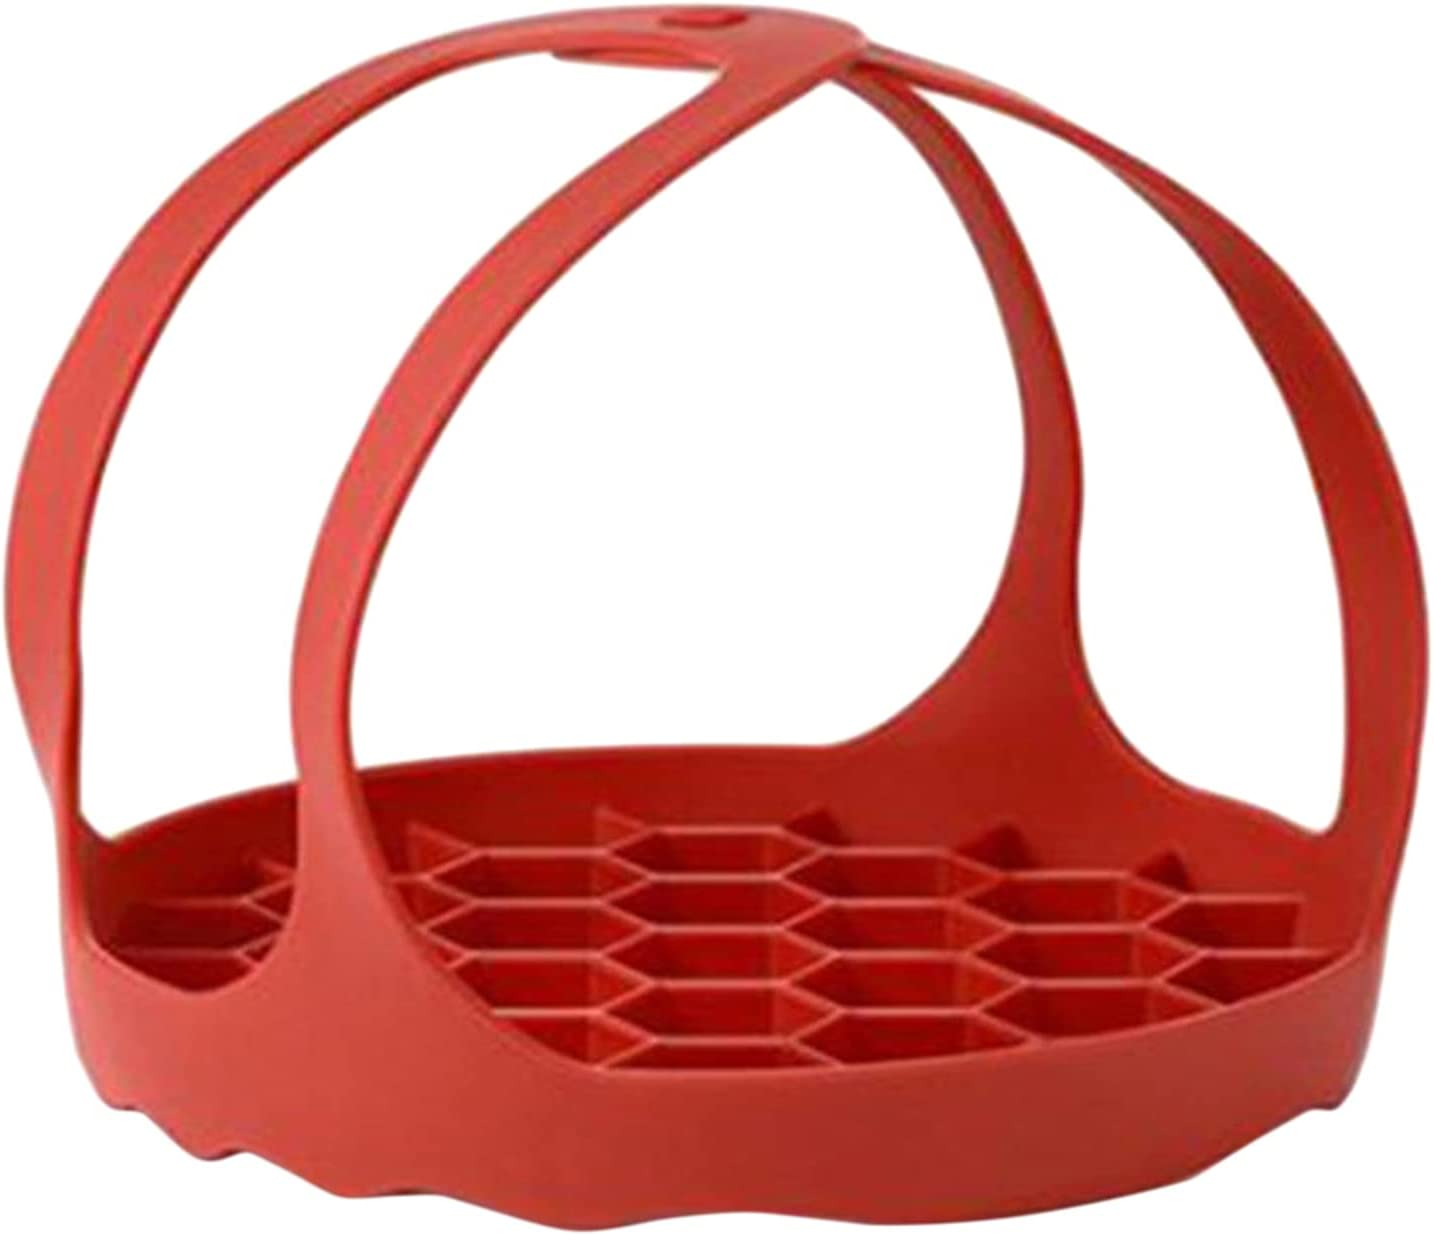 DONGMING Silicone Food Steamer Basket, with Handle Pressure Cooker Sling Steamer Insert Silicone Egg Ring,Red,7.99 inch